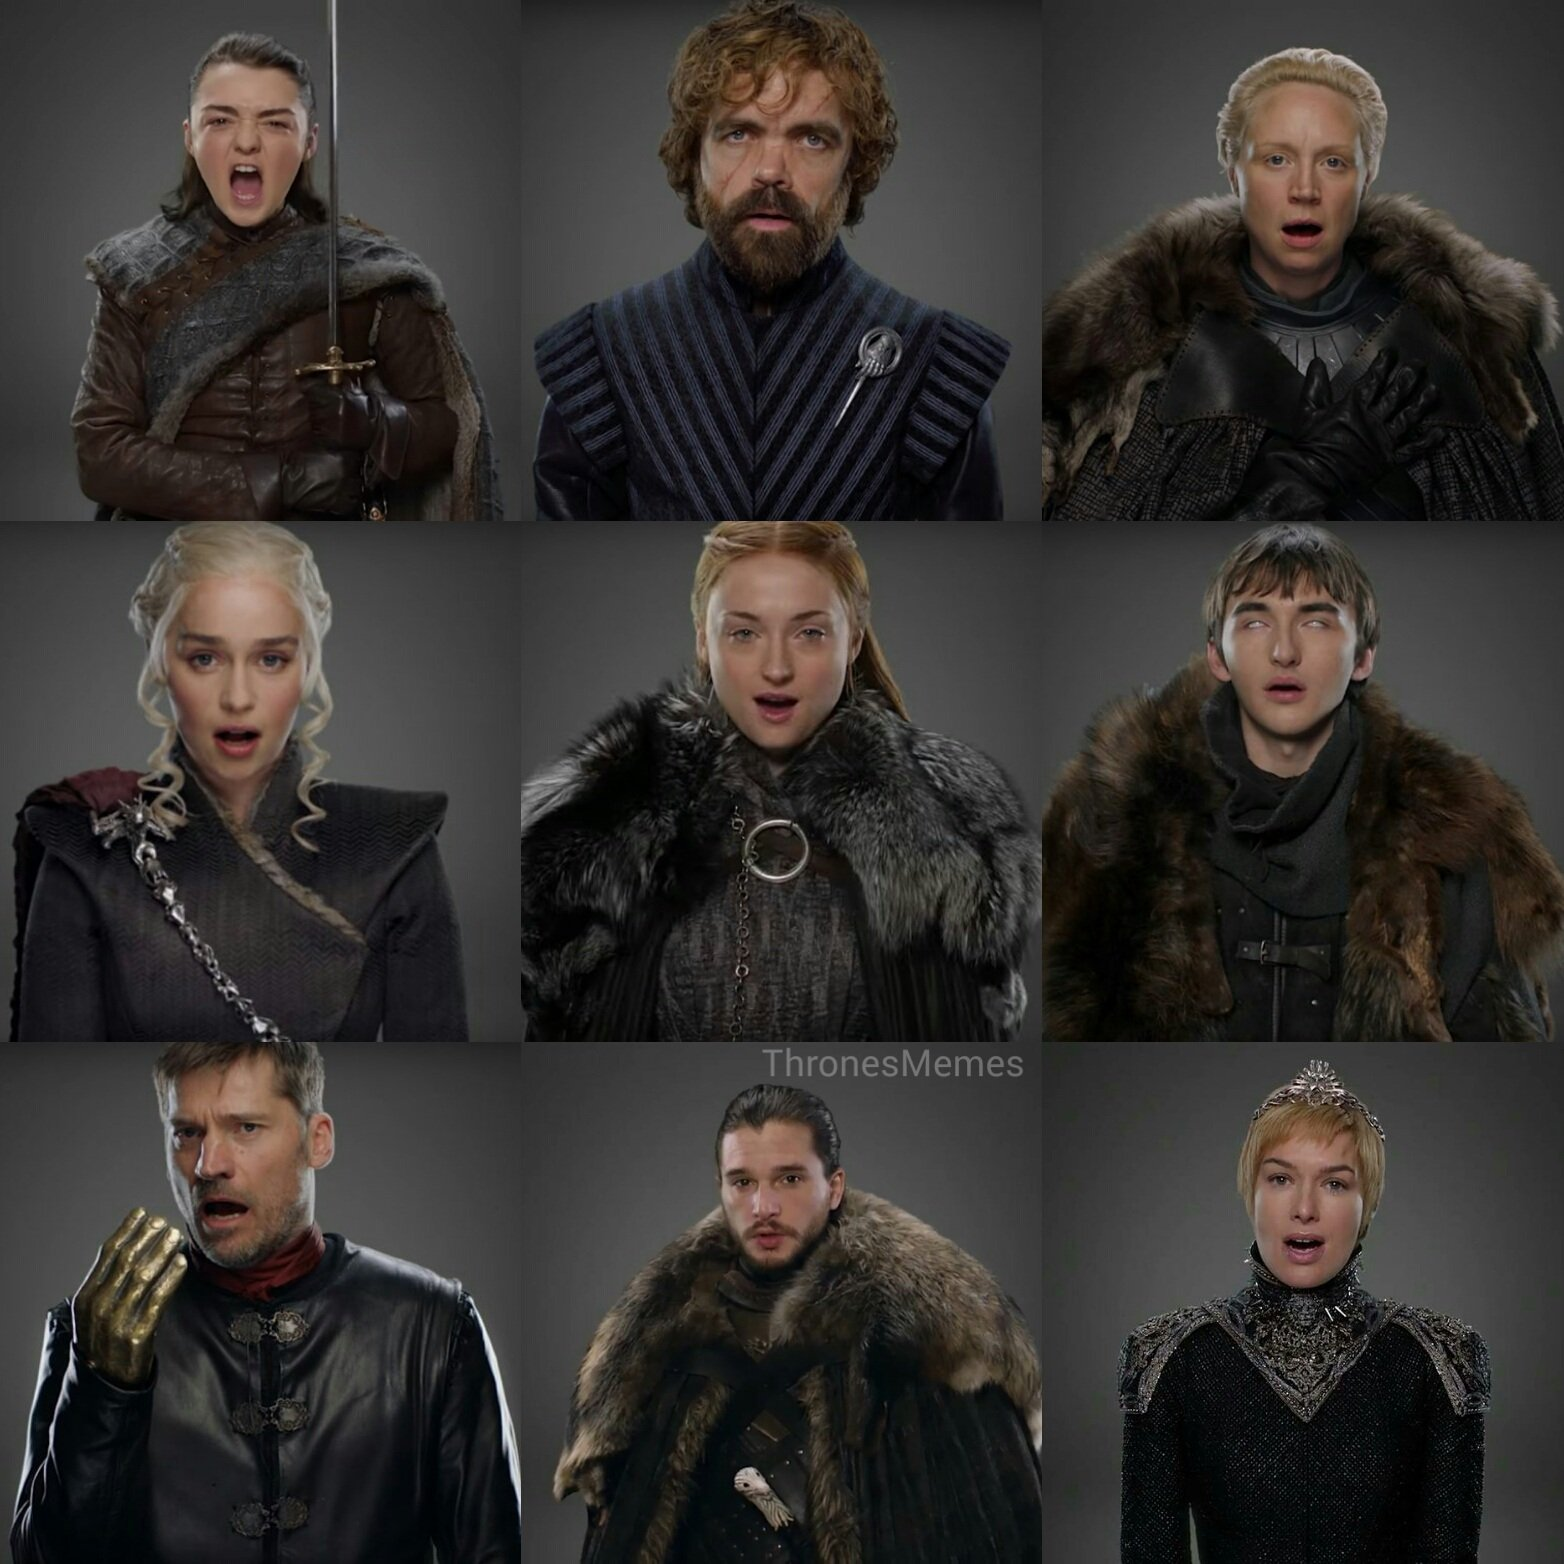 game of thrones memes on twitter gameofthrones cast with their season 7 outfits. Black Bedroom Furniture Sets. Home Design Ideas